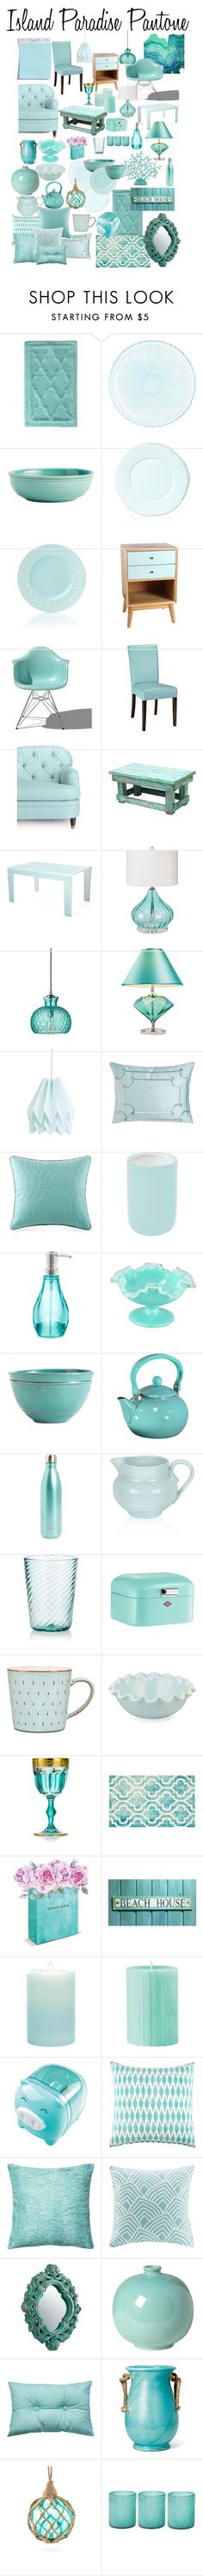 """""""Island Paradise Pantone Decor"""" by teciane-ro ❤ liked on Polyvore featuring Jessica Simpson, Pier 1 Imports, Pottery Barn, Vietri, Lenox, Antique Revival, Herman Miller, Home Decorators Collection, Kate Spade and Sovet Italia"""